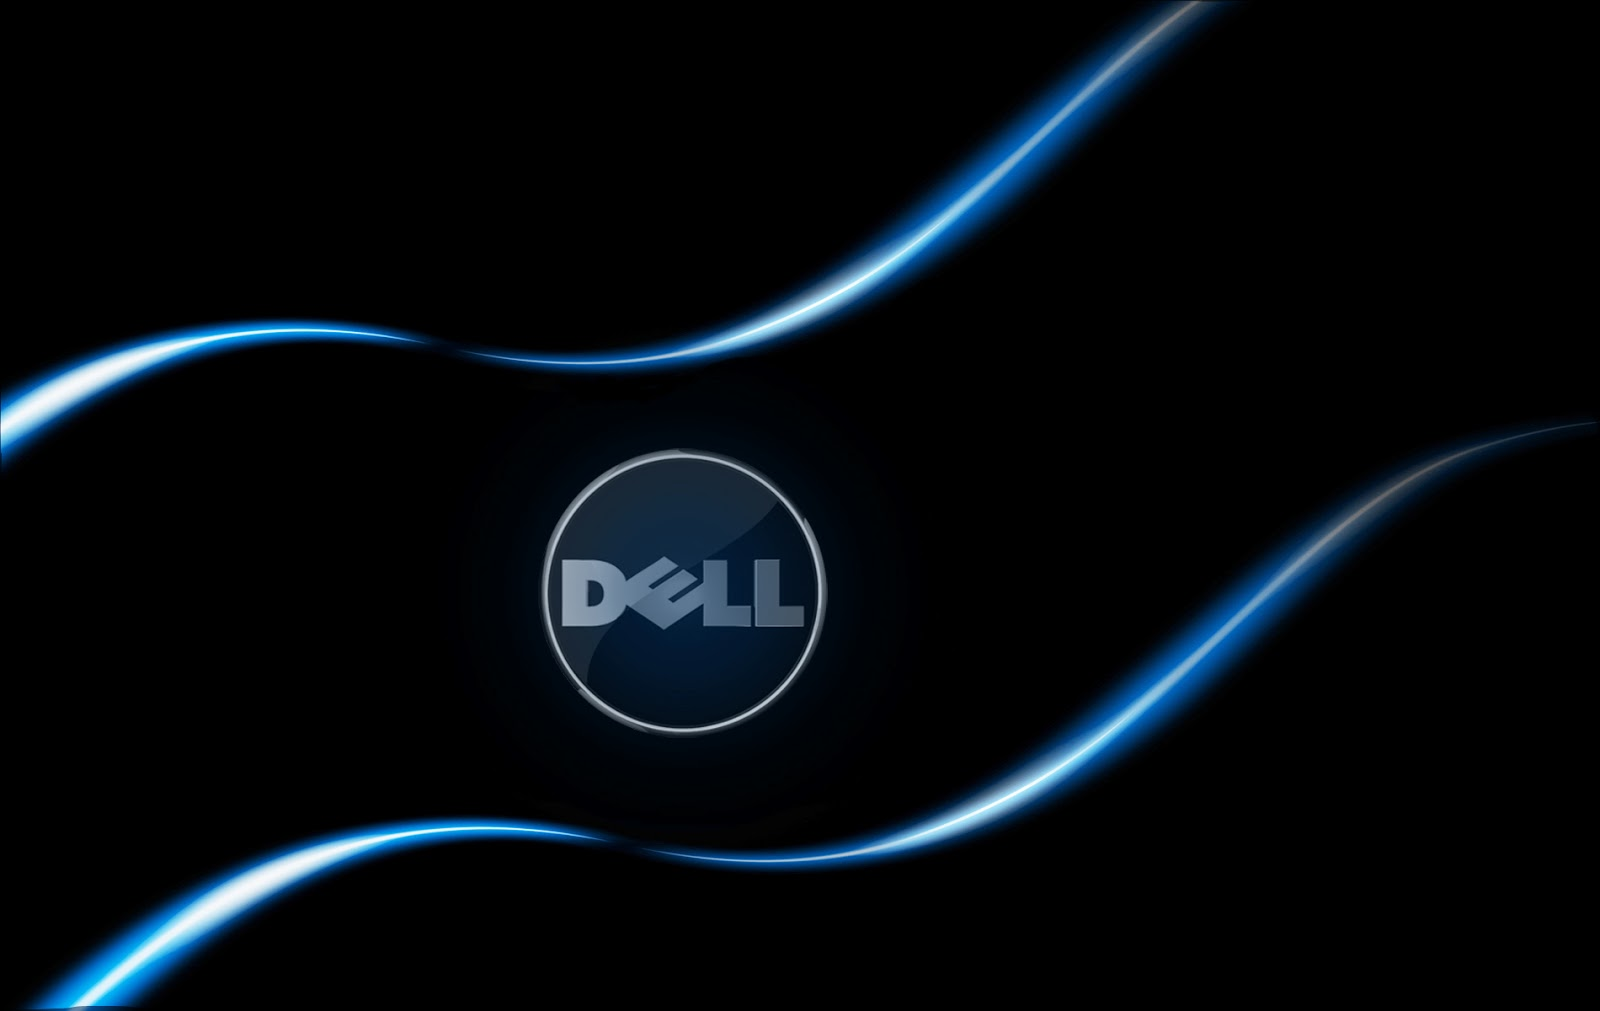 Dell Wallpaper: HD Wallpapers For Dell Laptop